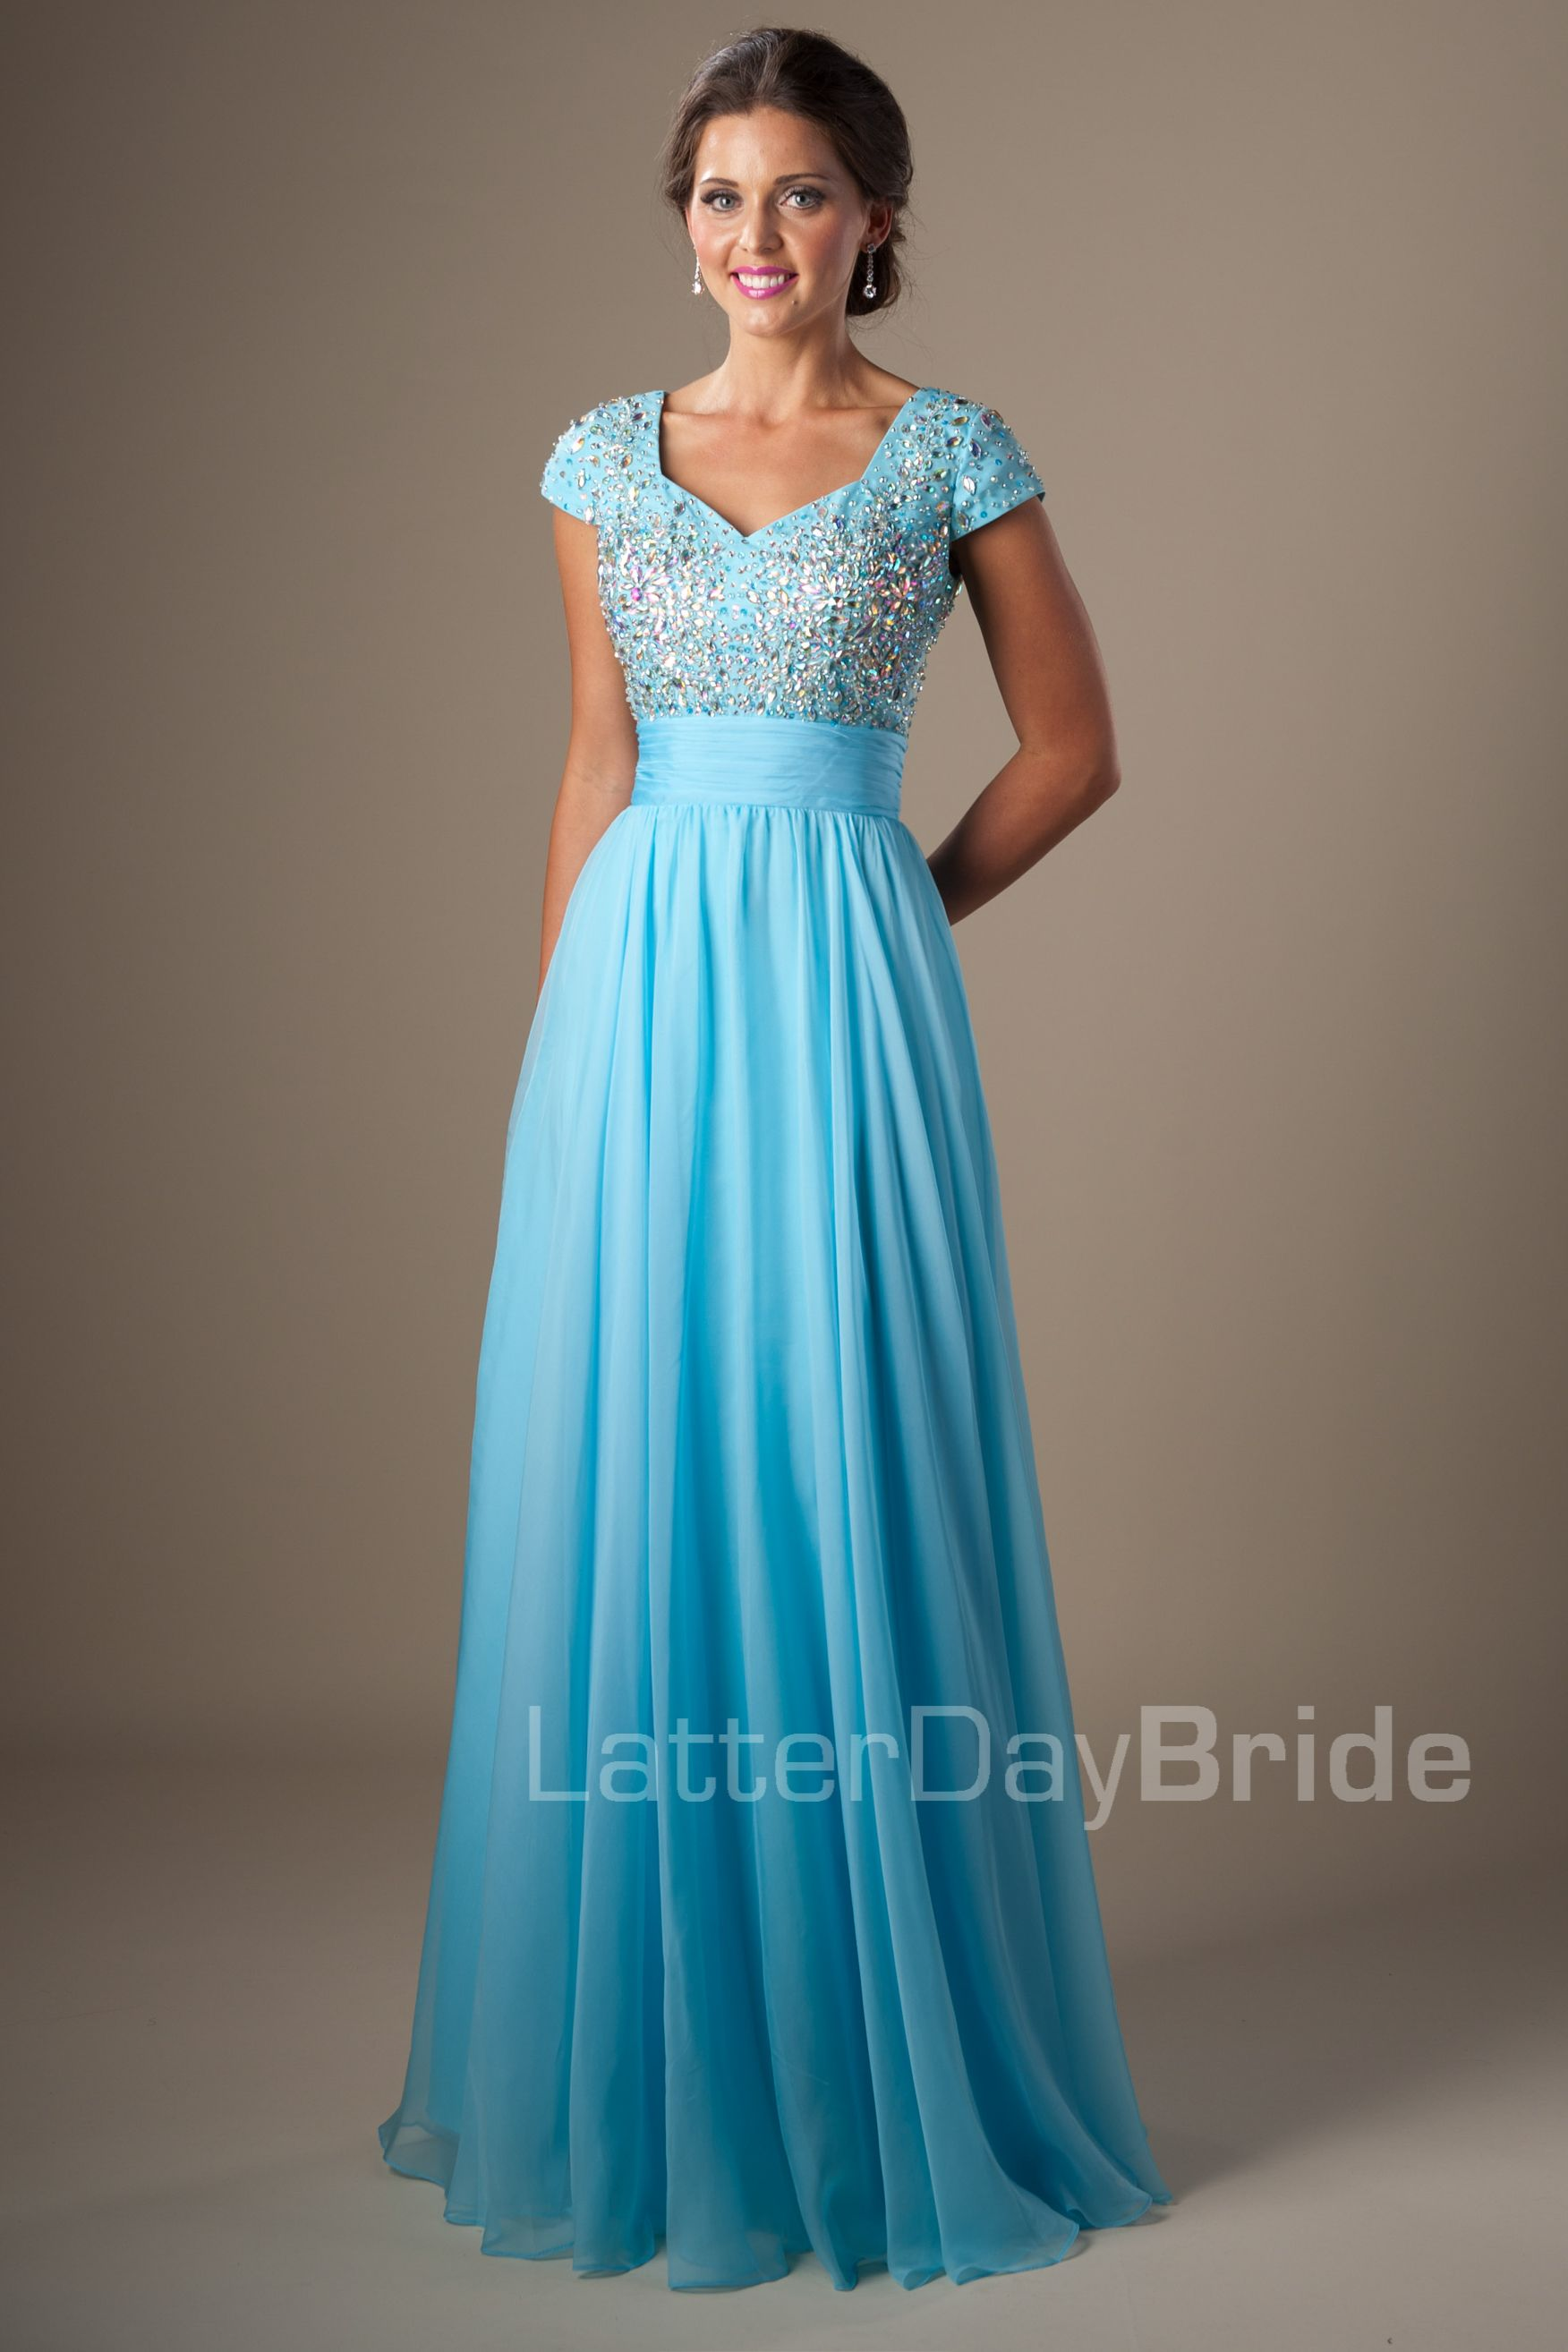 Modest prom dresses dixie this site is amazing prom